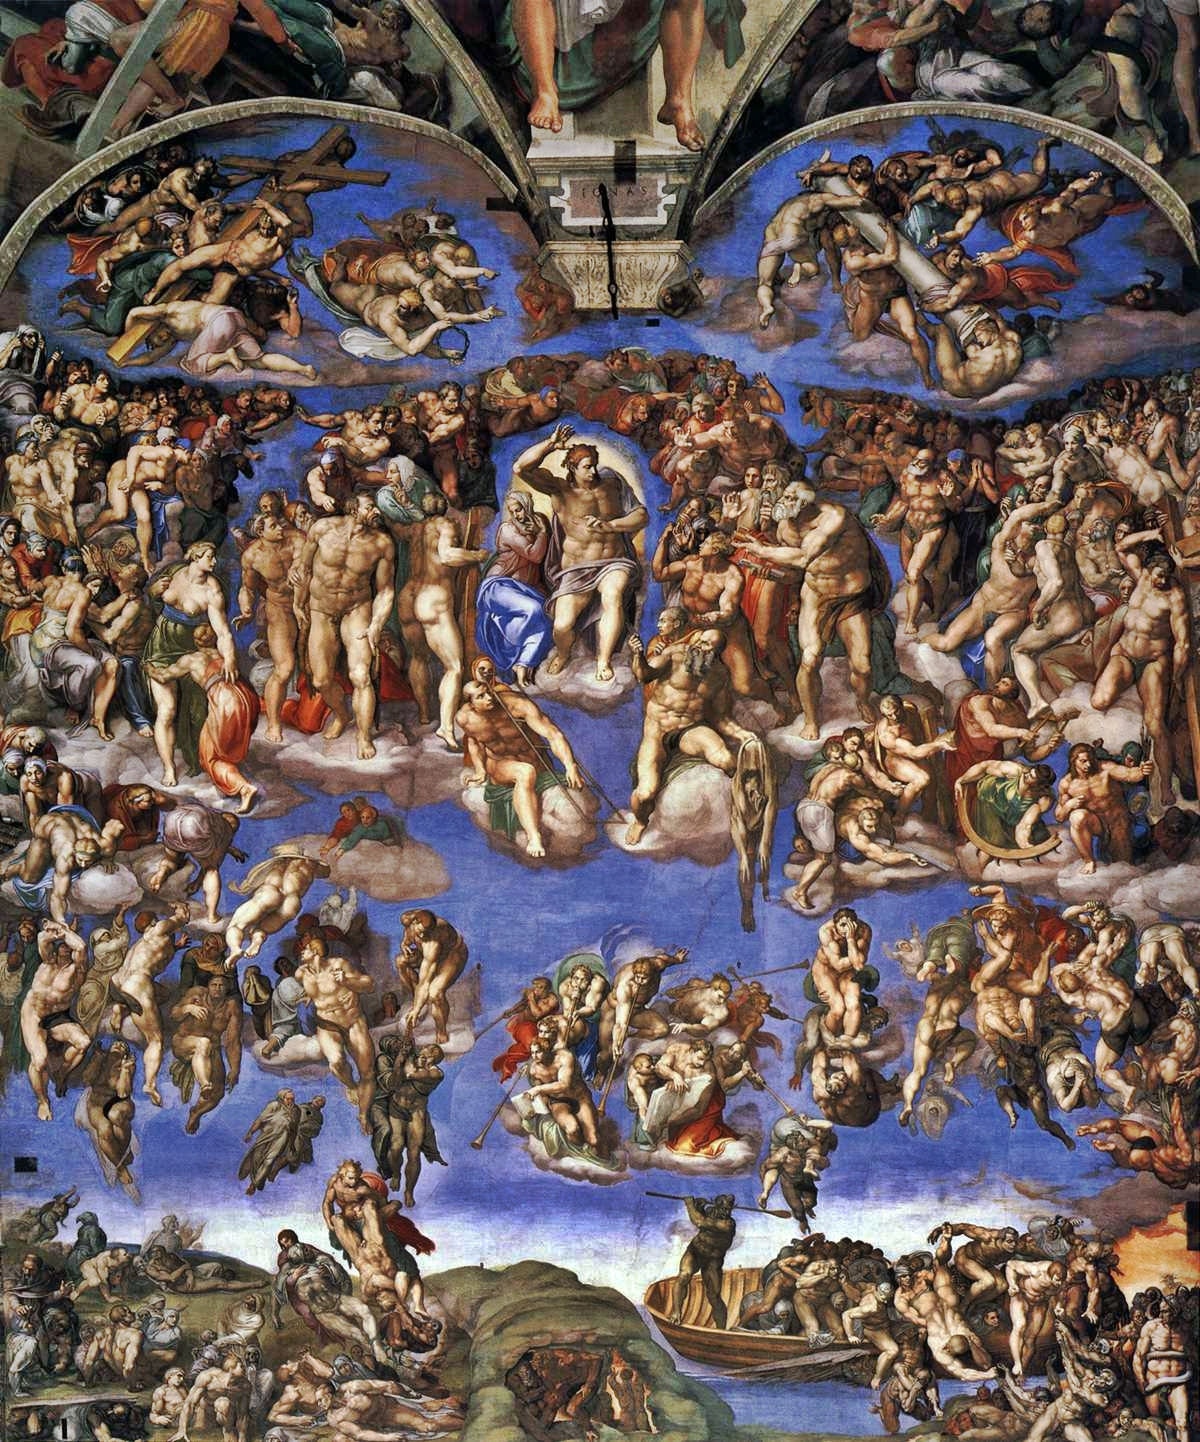 Sistine Chapel, Vatican, Michelangelo fresco, The Last Judgment detail